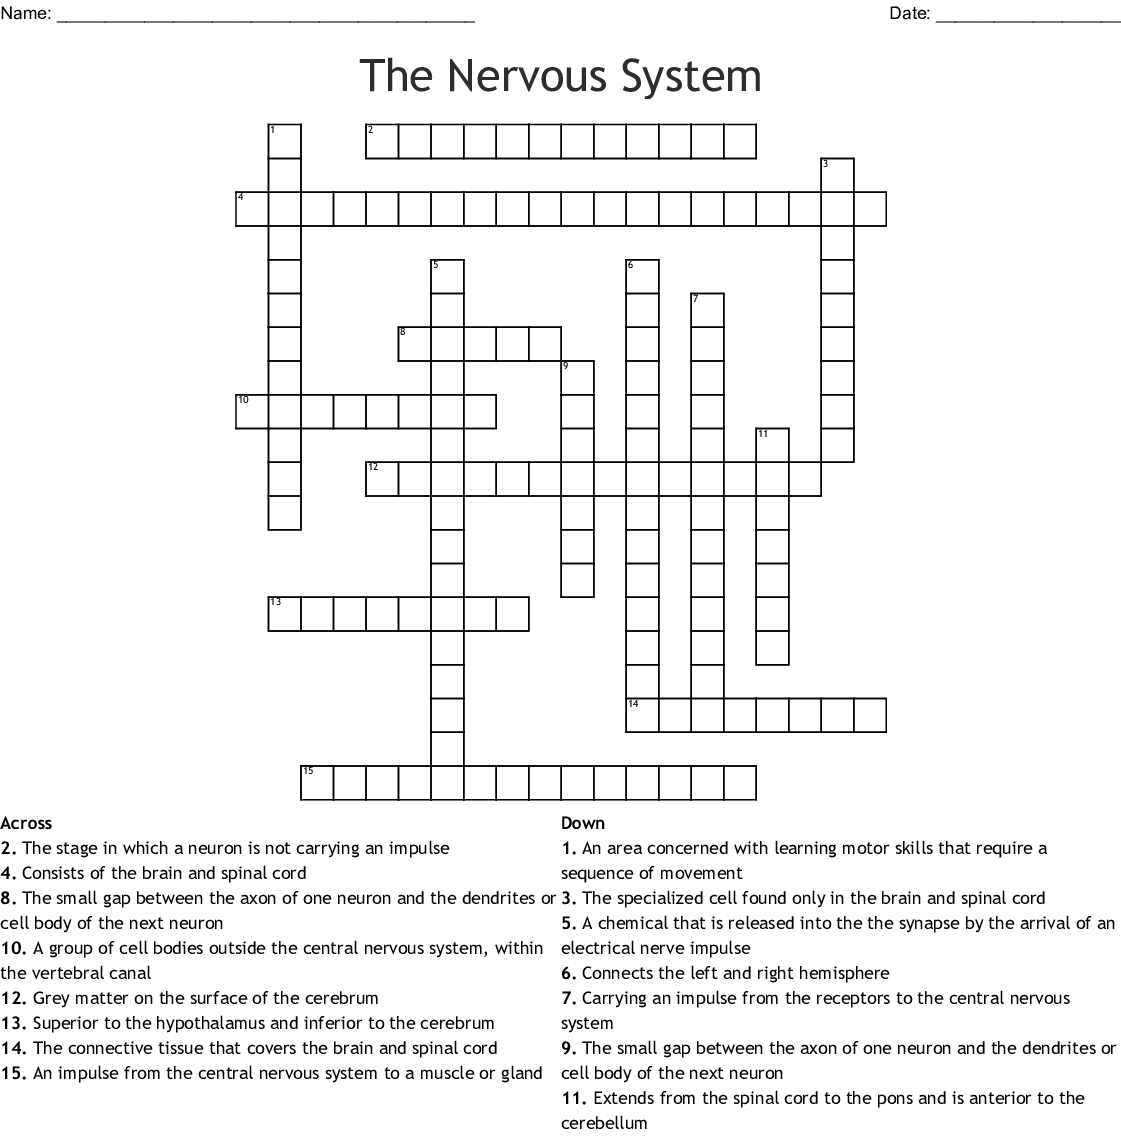 The Nervous System Word Search - WordMint